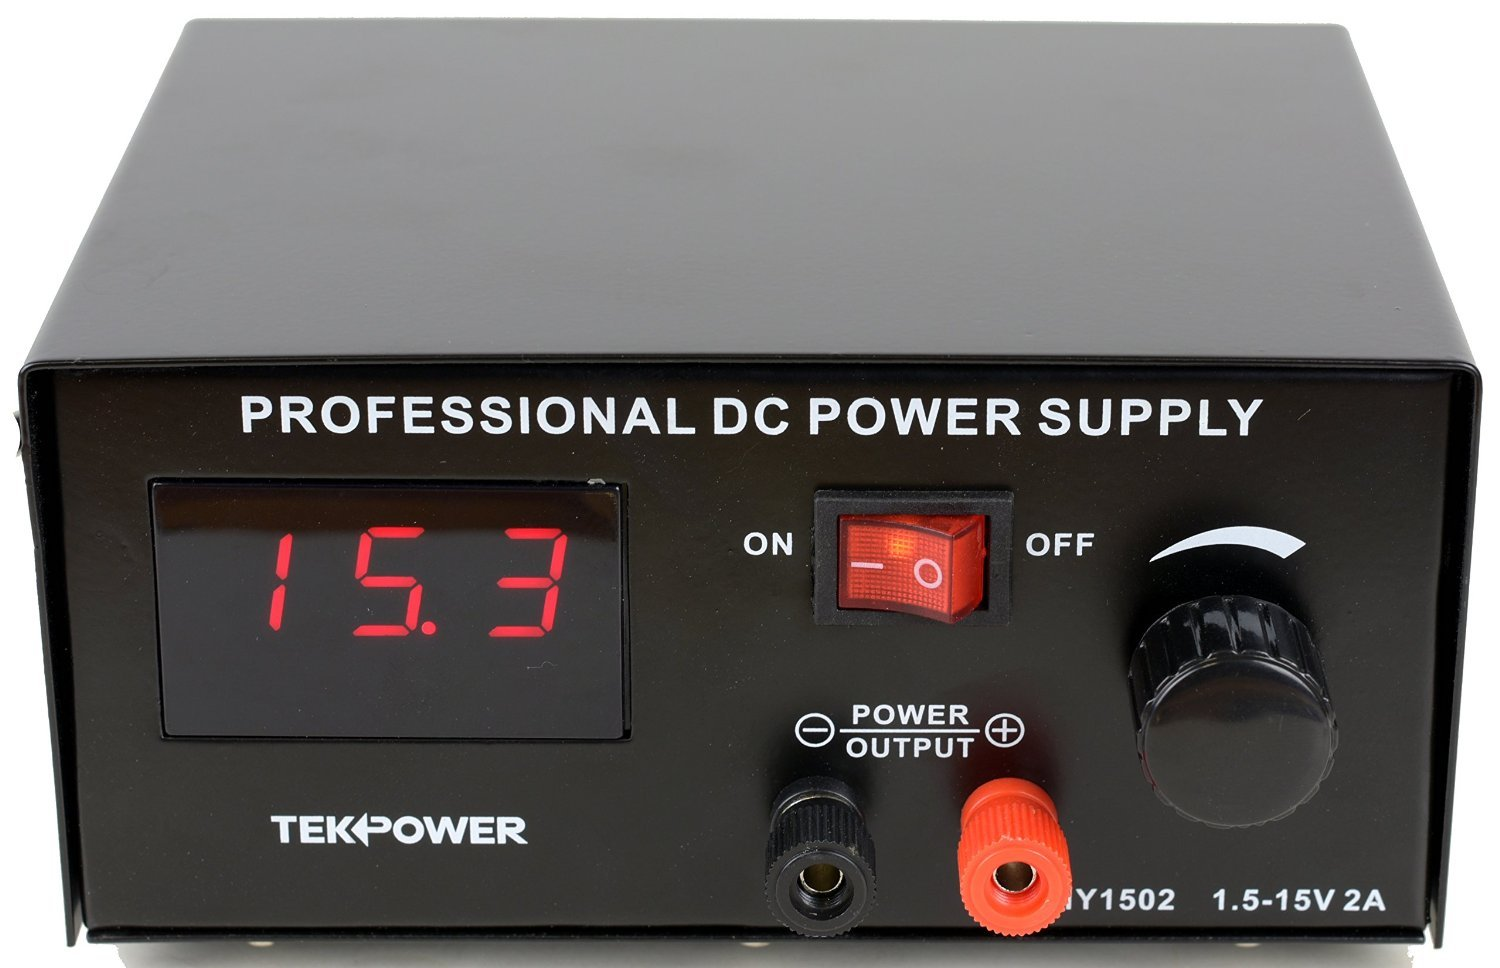 Tekpower Hy 1502 Dc Power Supply 15 Volts 2 Amp 0 30v0 2a Adjustable Voltage And Current Regulator For Tattoo More Home Audio Theater